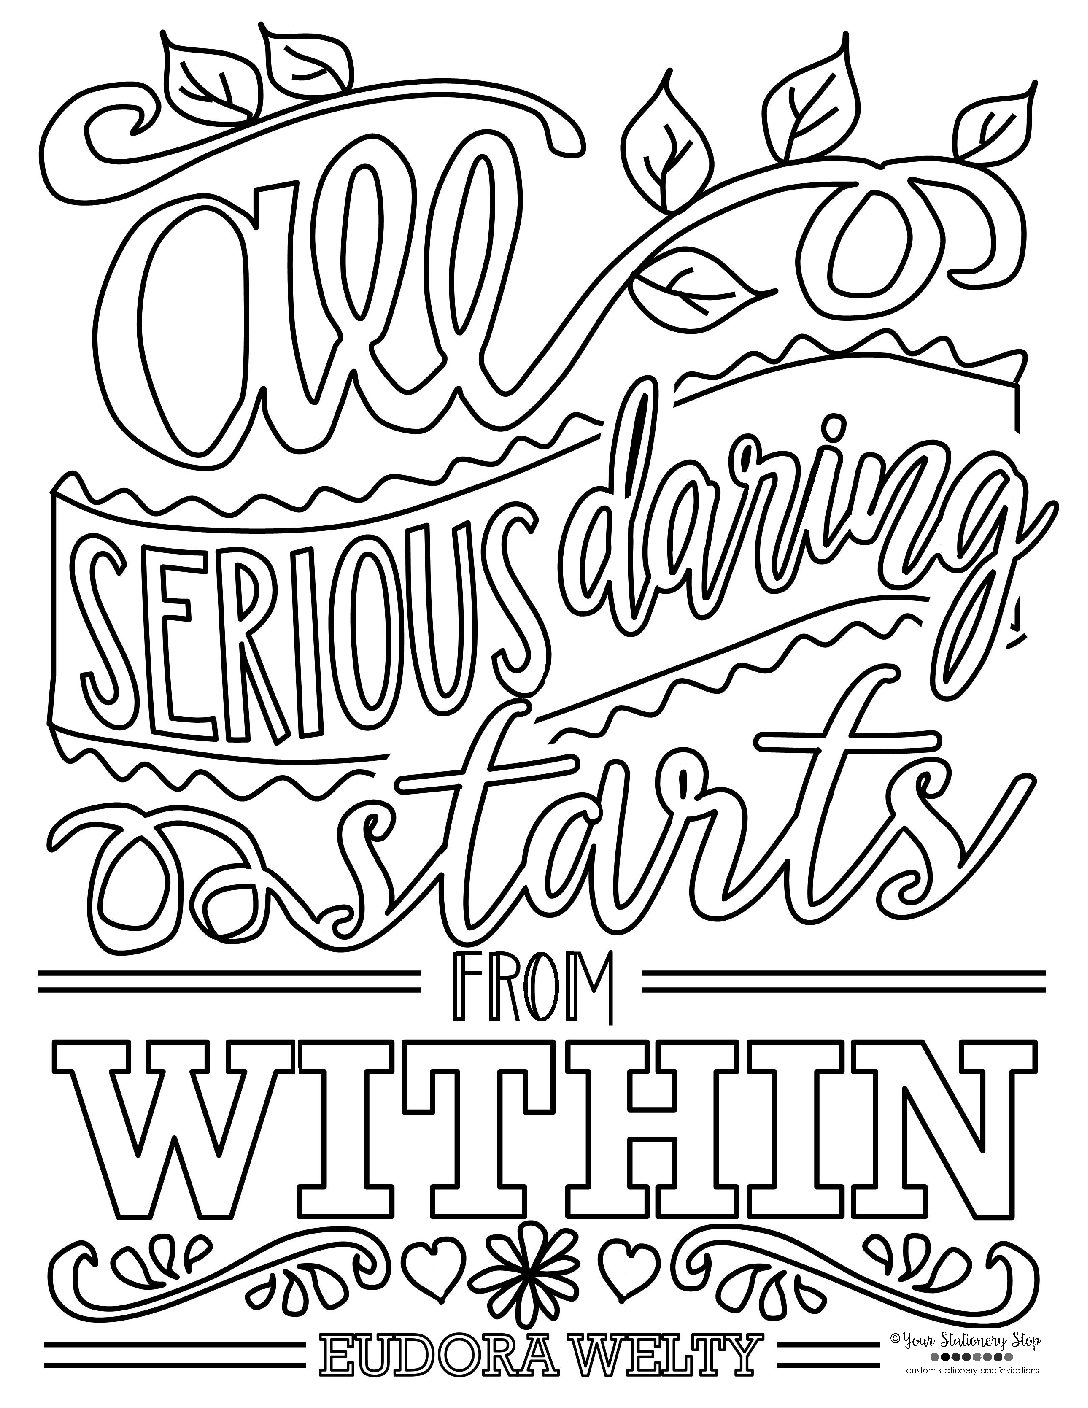 all-serious-daring-PRINTABLE